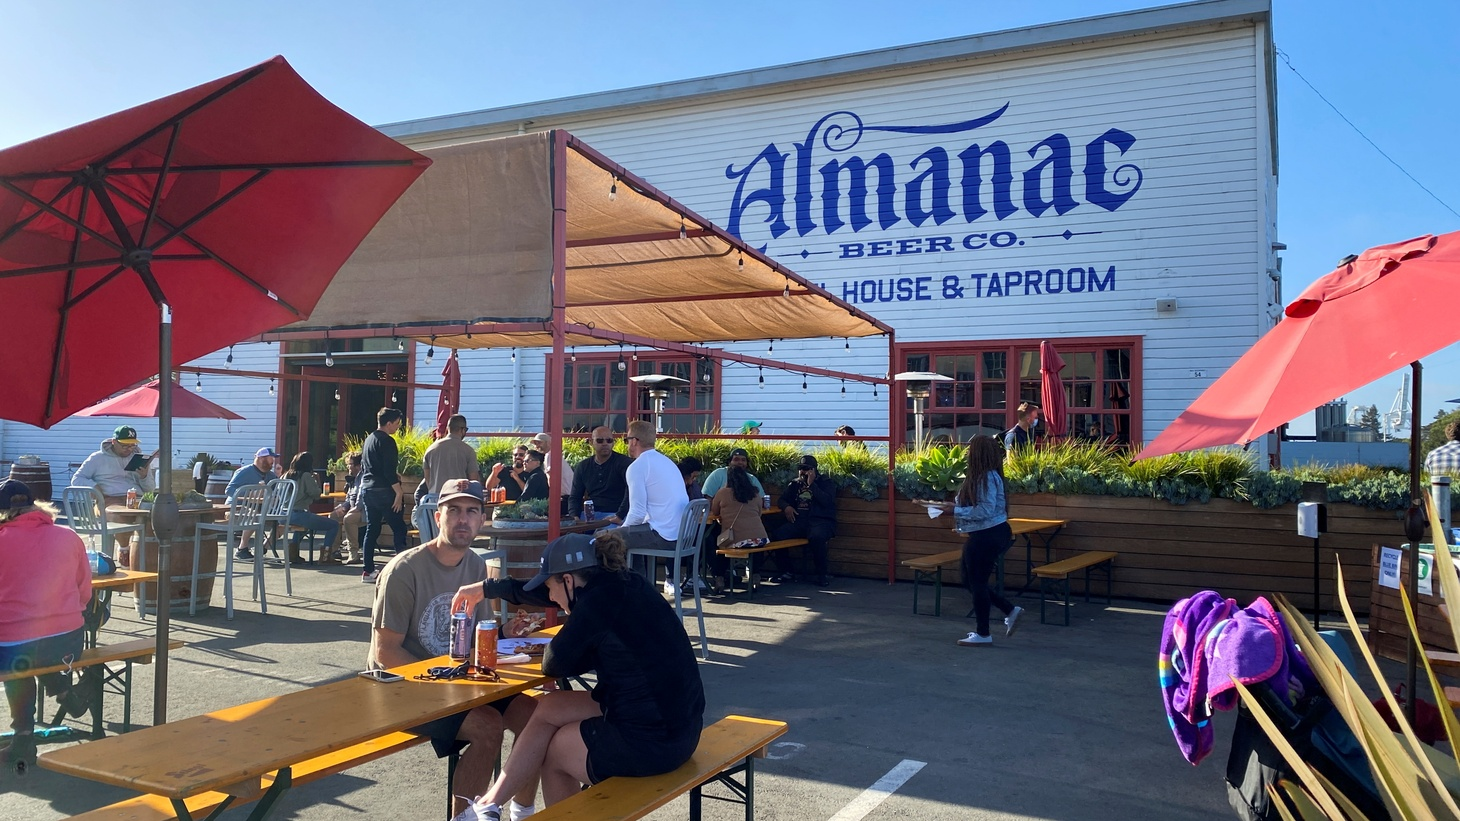 Customers drink, eat and talk at well-spaced tables on Almanac Taproom's former parking lot-turned-pandemic beer garden in Alameda, California, U.S. June 4, 2021